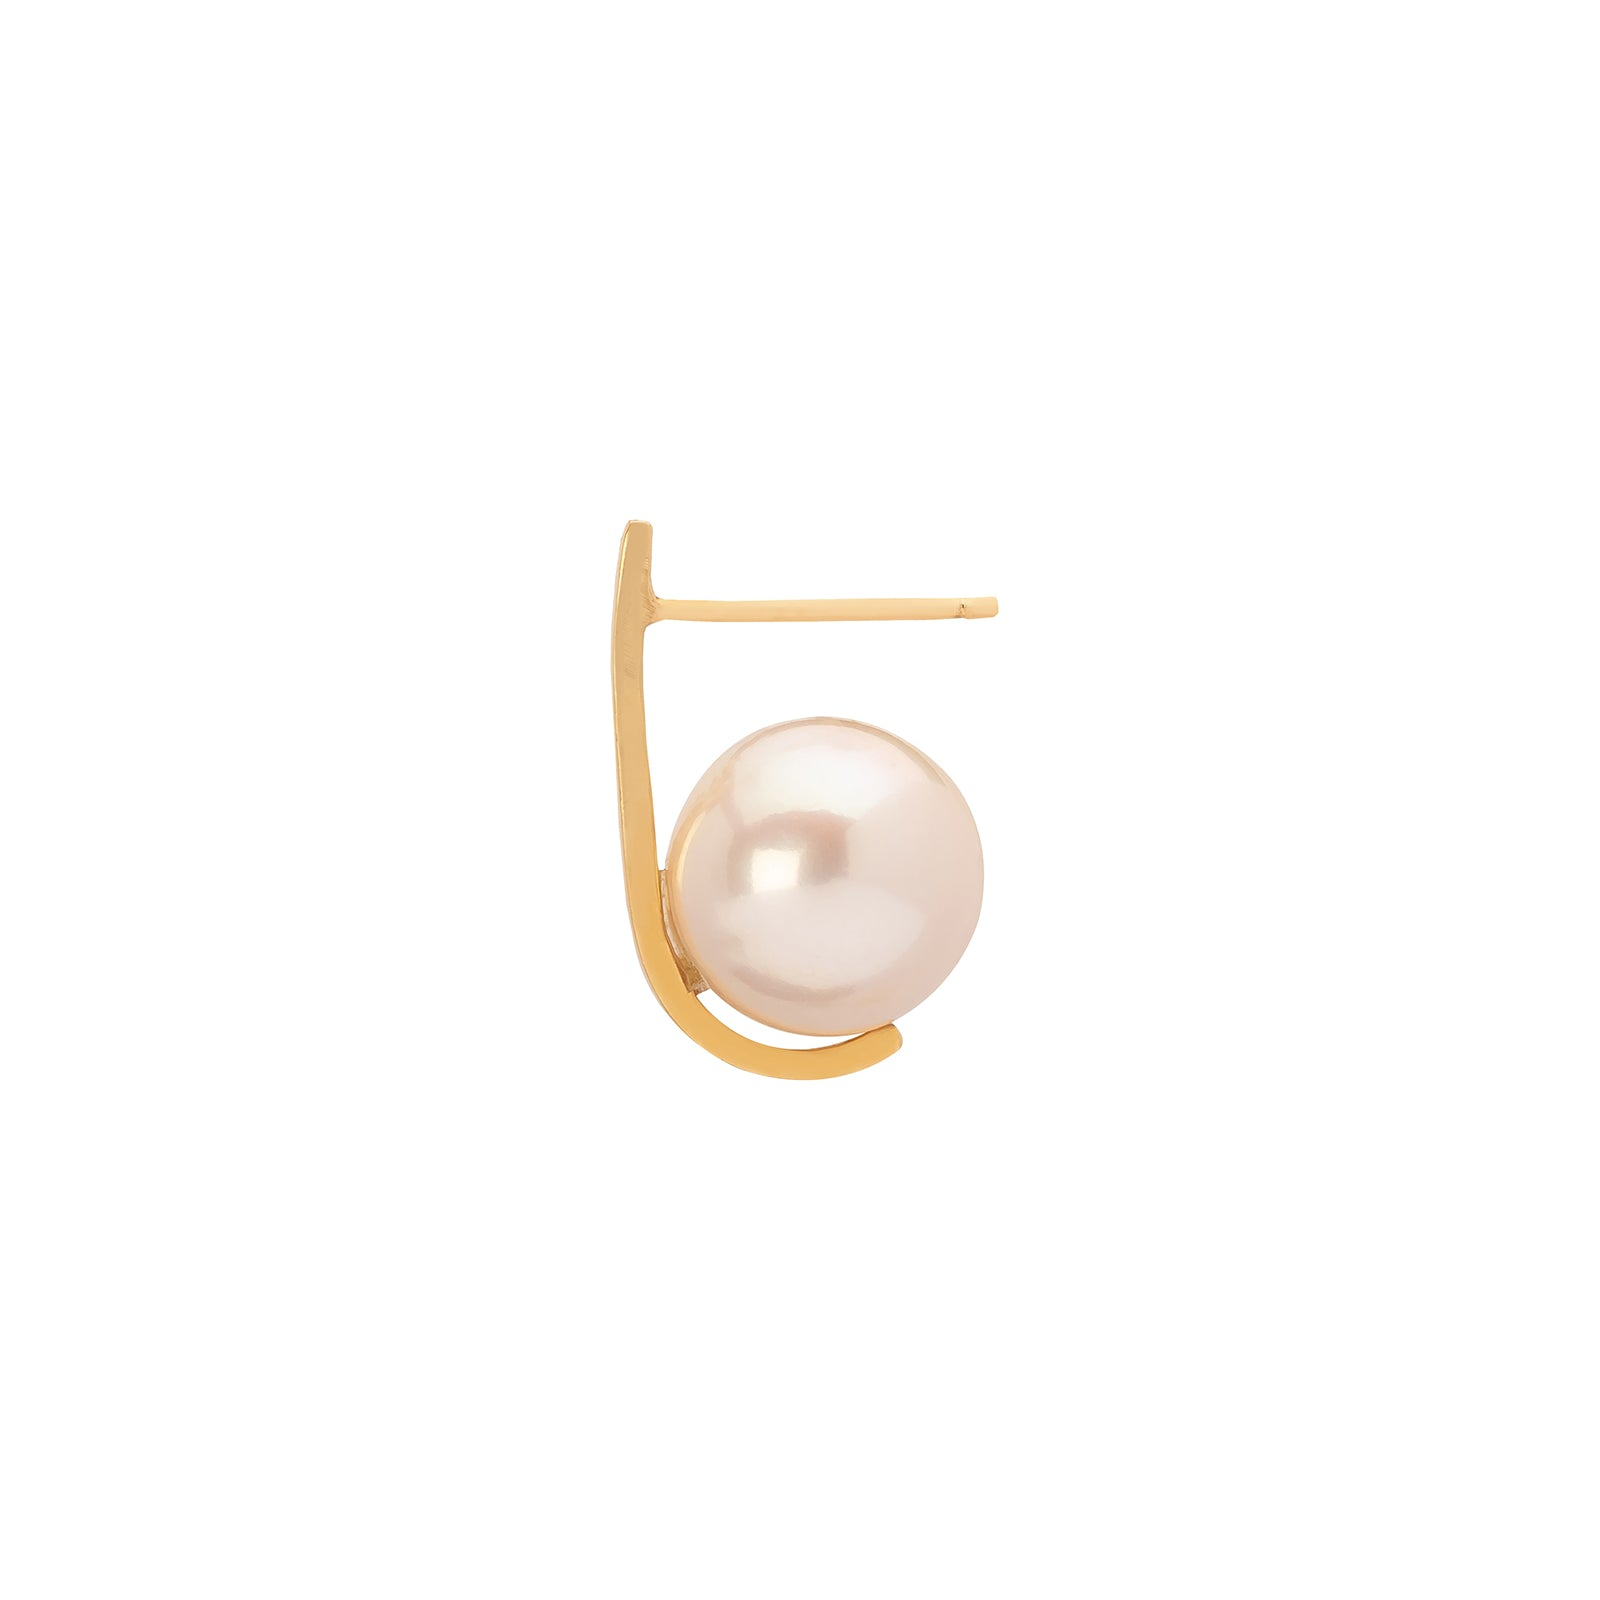 Katey Walker Pearl Curved Tucked Stud - Large - Earrings - Broken English Jewelry